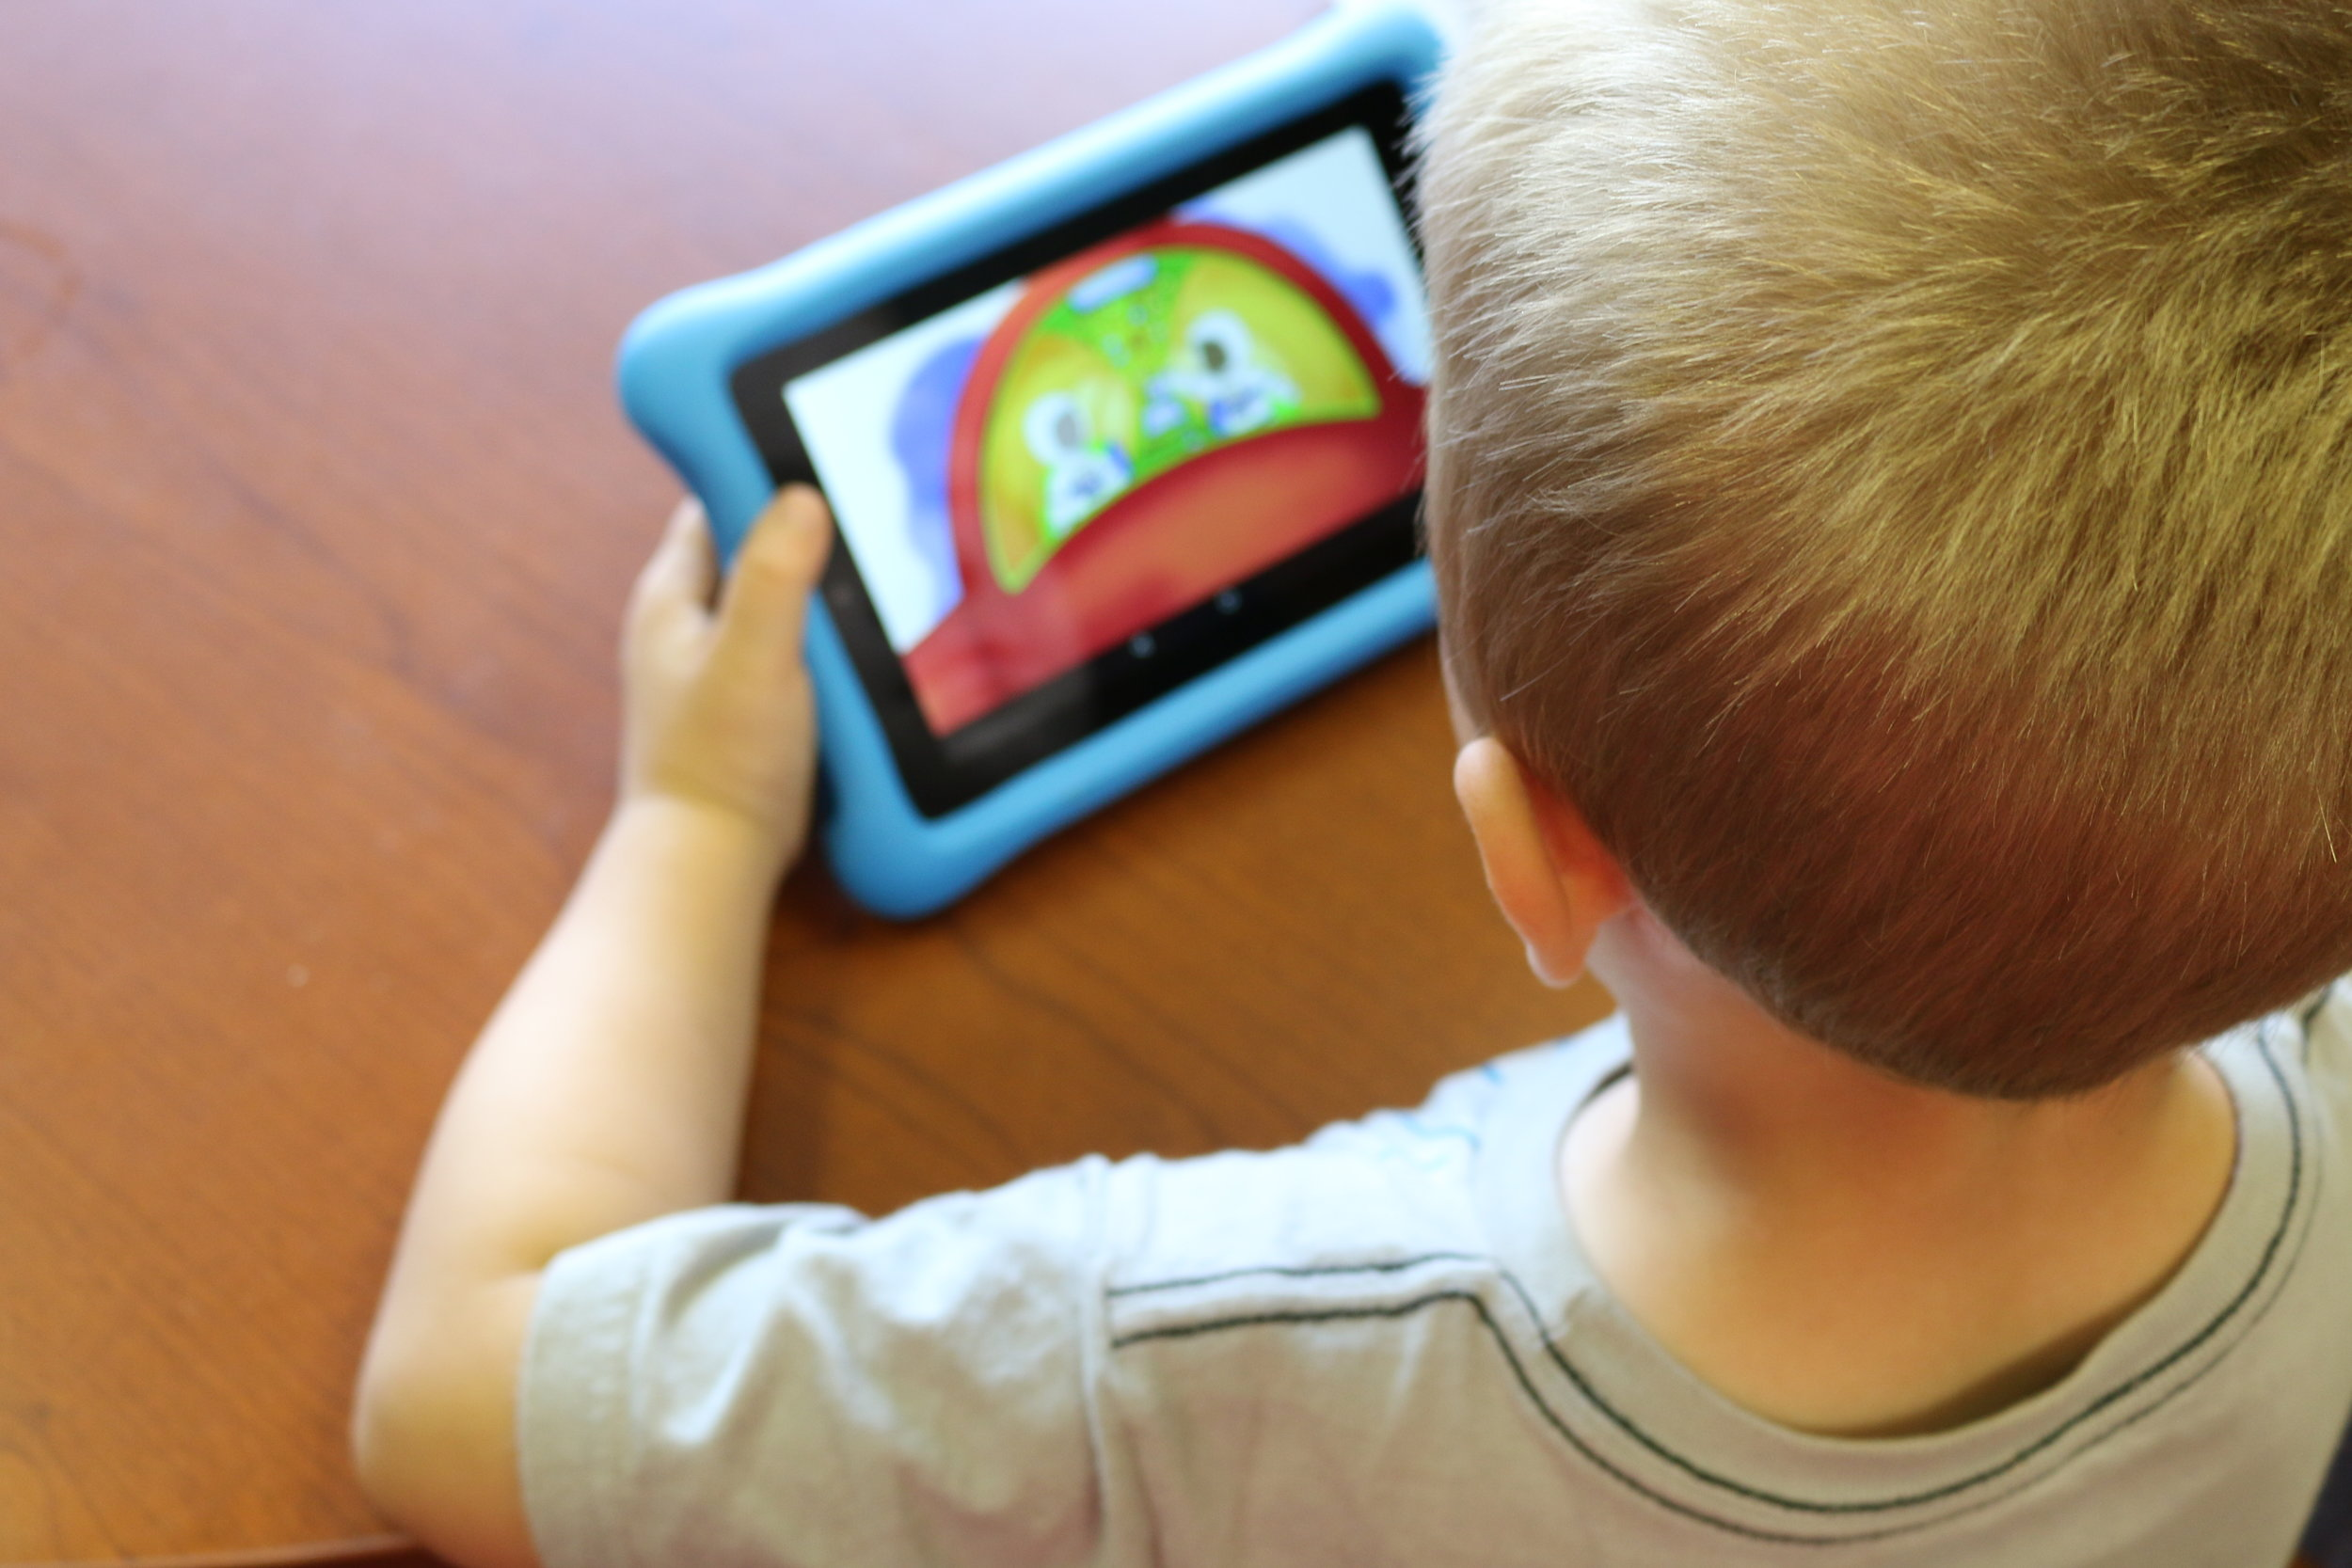 Educational Apps - For those who have already access to a tablet, below are some applications we recommend.